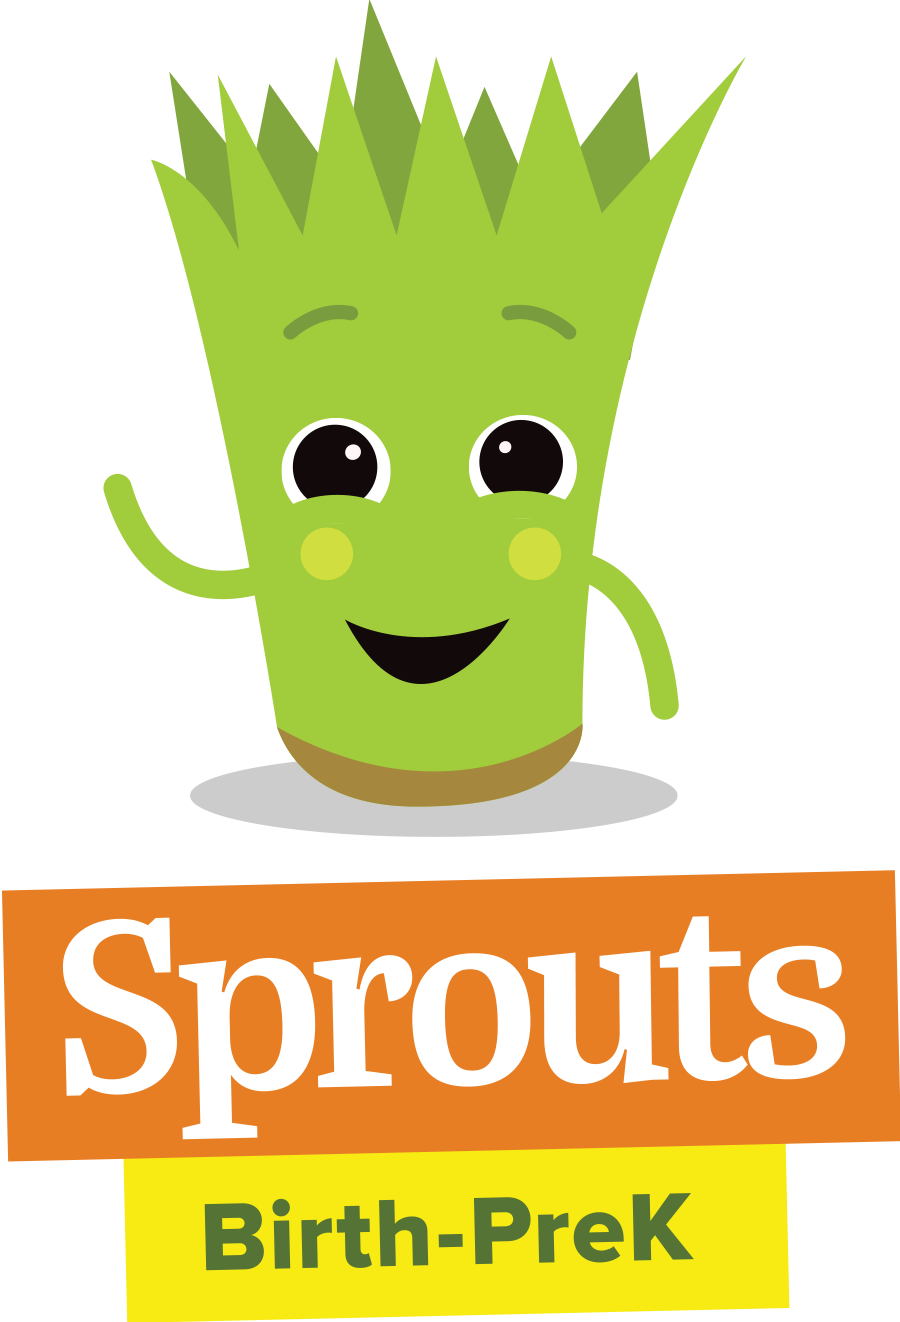 sprouts.png